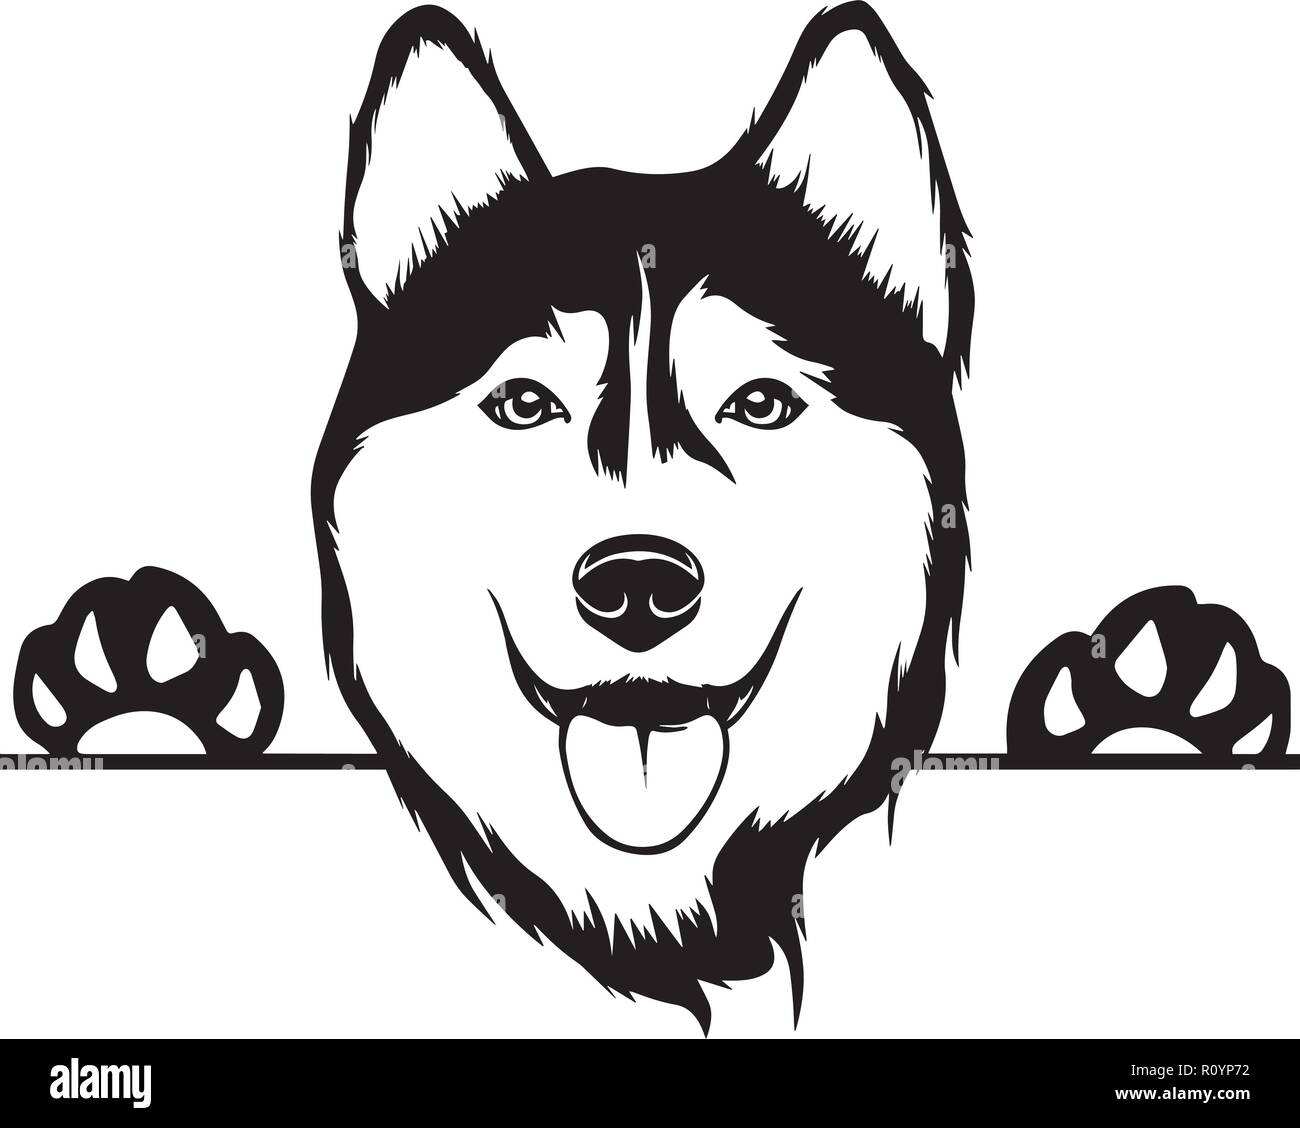 Siberian Husky Pedigree Dog Breed Head Isolated Pet Portrait Smiling Happy Puppy Face Animal Cartoon Illustration Portrait Art Artwork Cute Design Stock Vector Image Art Alamy